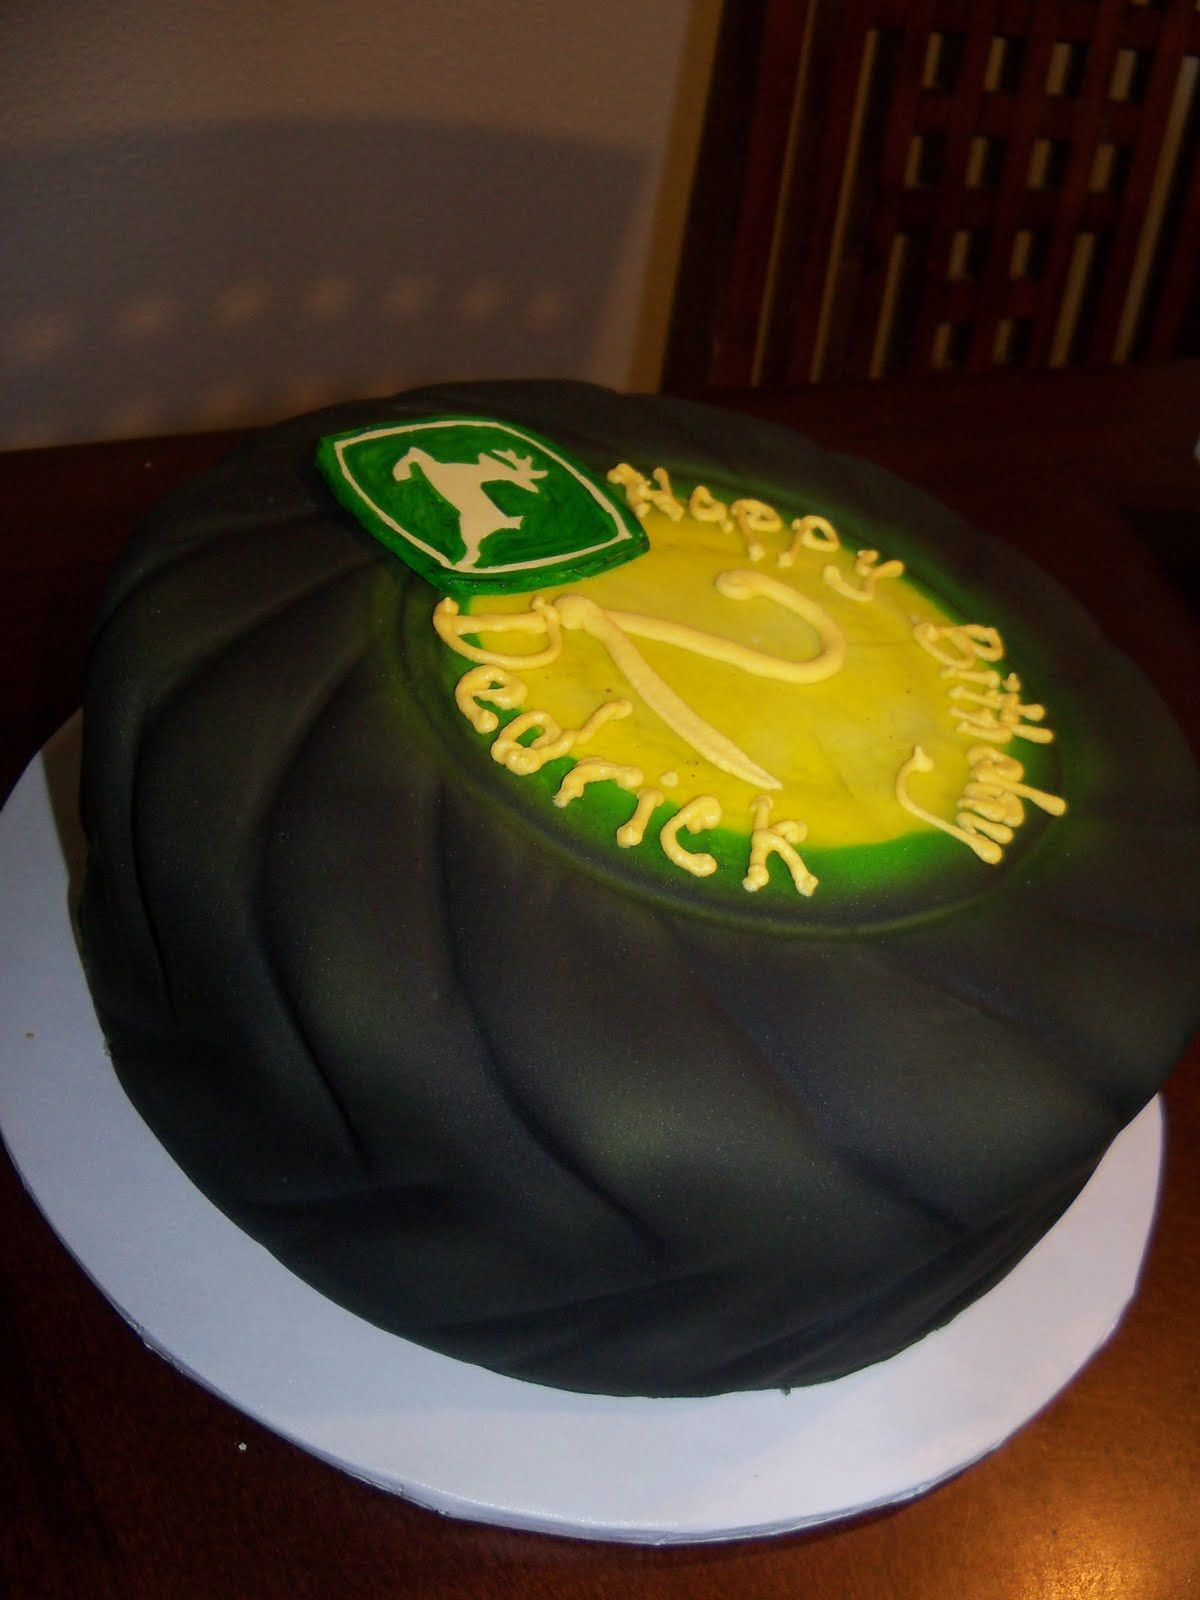 Debbies Cakes and Sweets John Deere tractor cake cakes I wanna